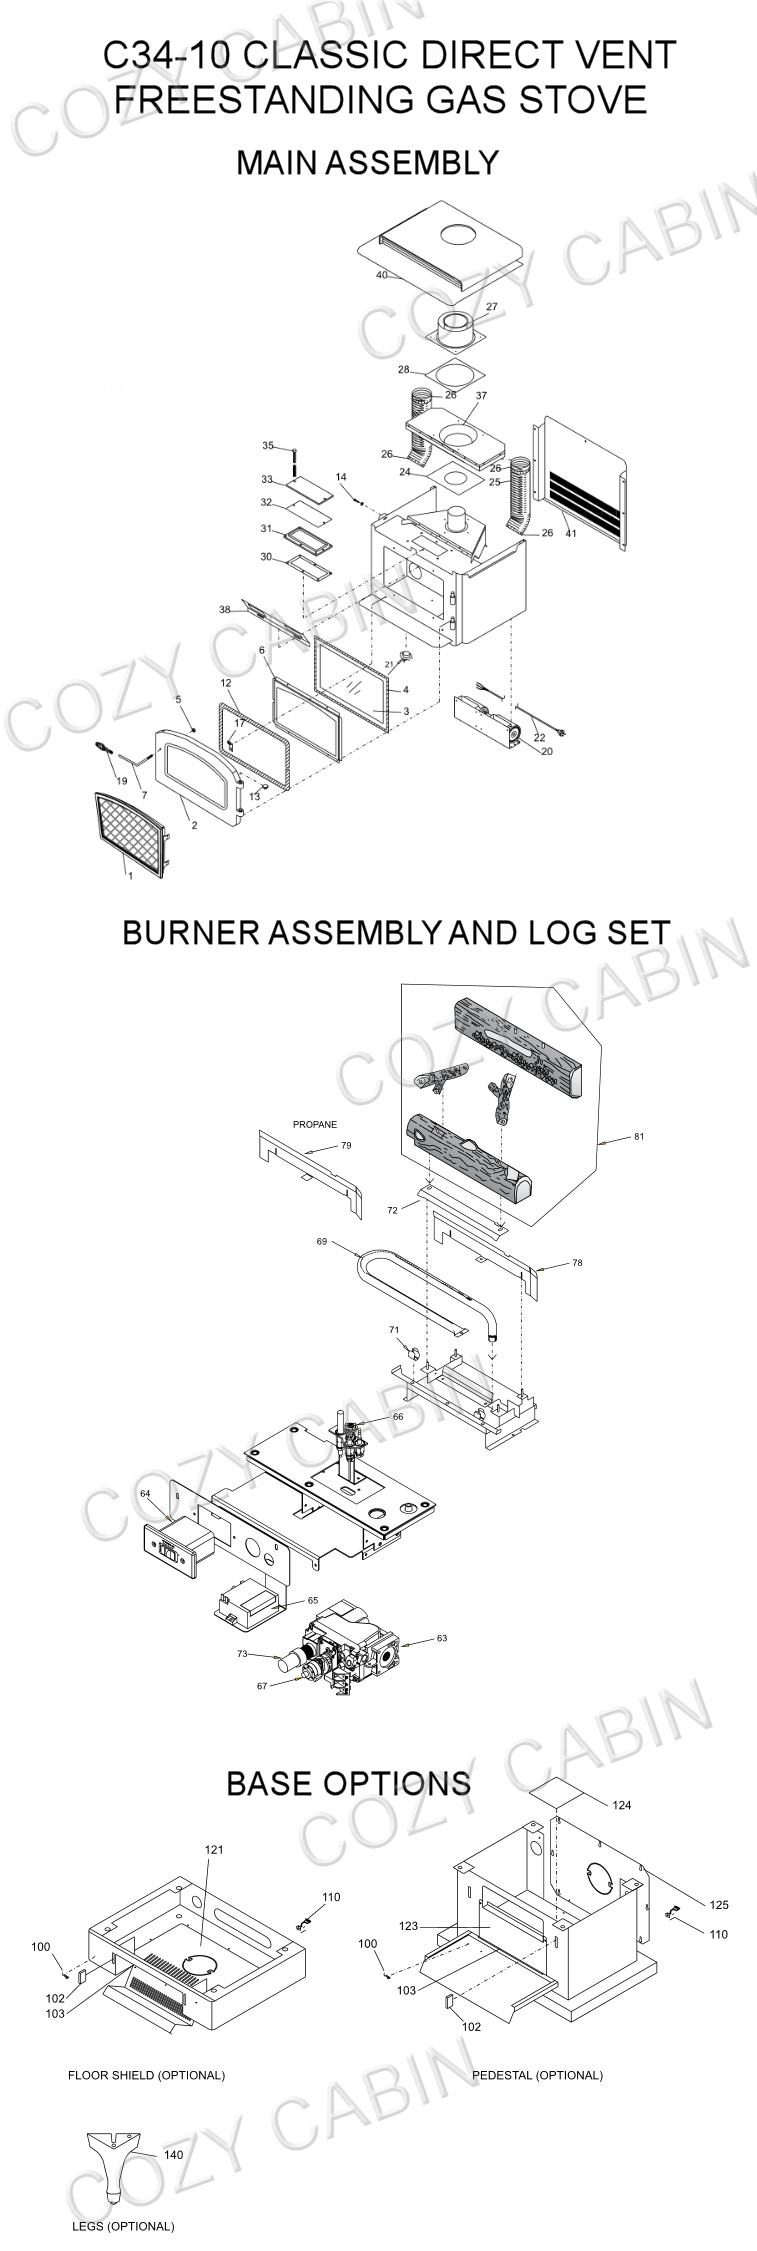 Classic Direct Vent Gas Stove C34 10 Cozy Cabin Regency Burner Schematic